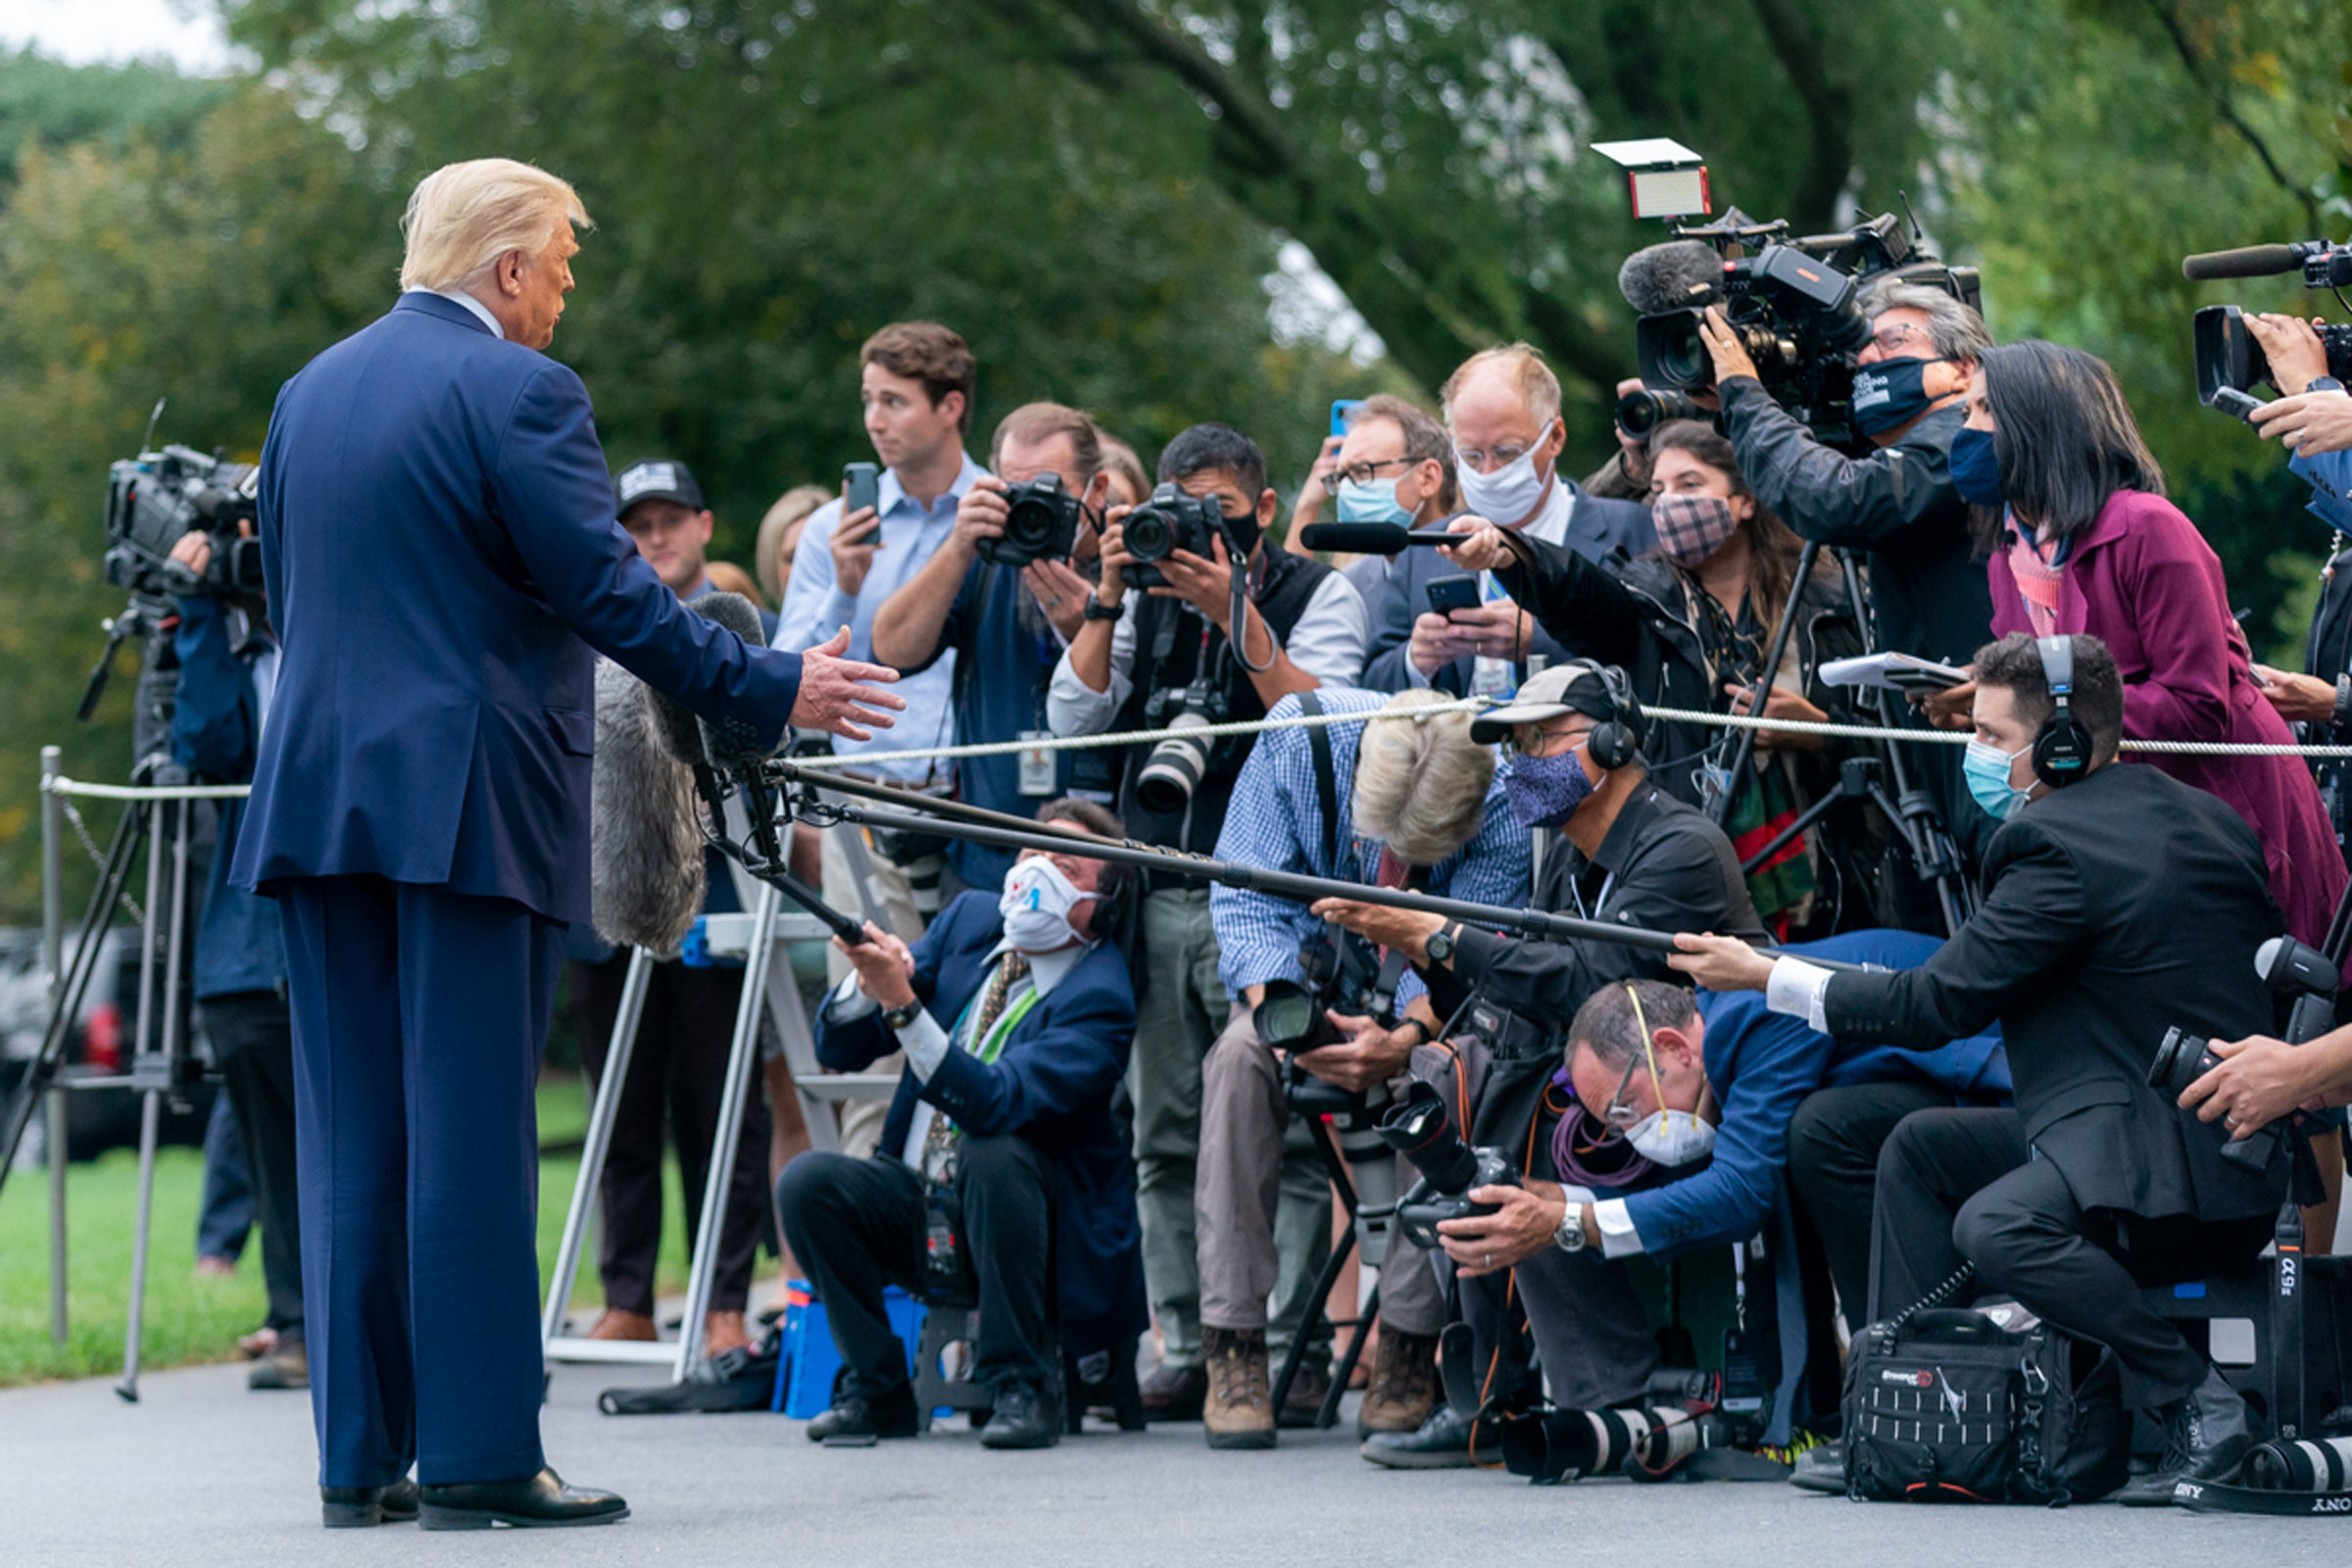 Donald Trump, a white dumpy man wearing a navy blue suit, talks to journalists in front of the White House